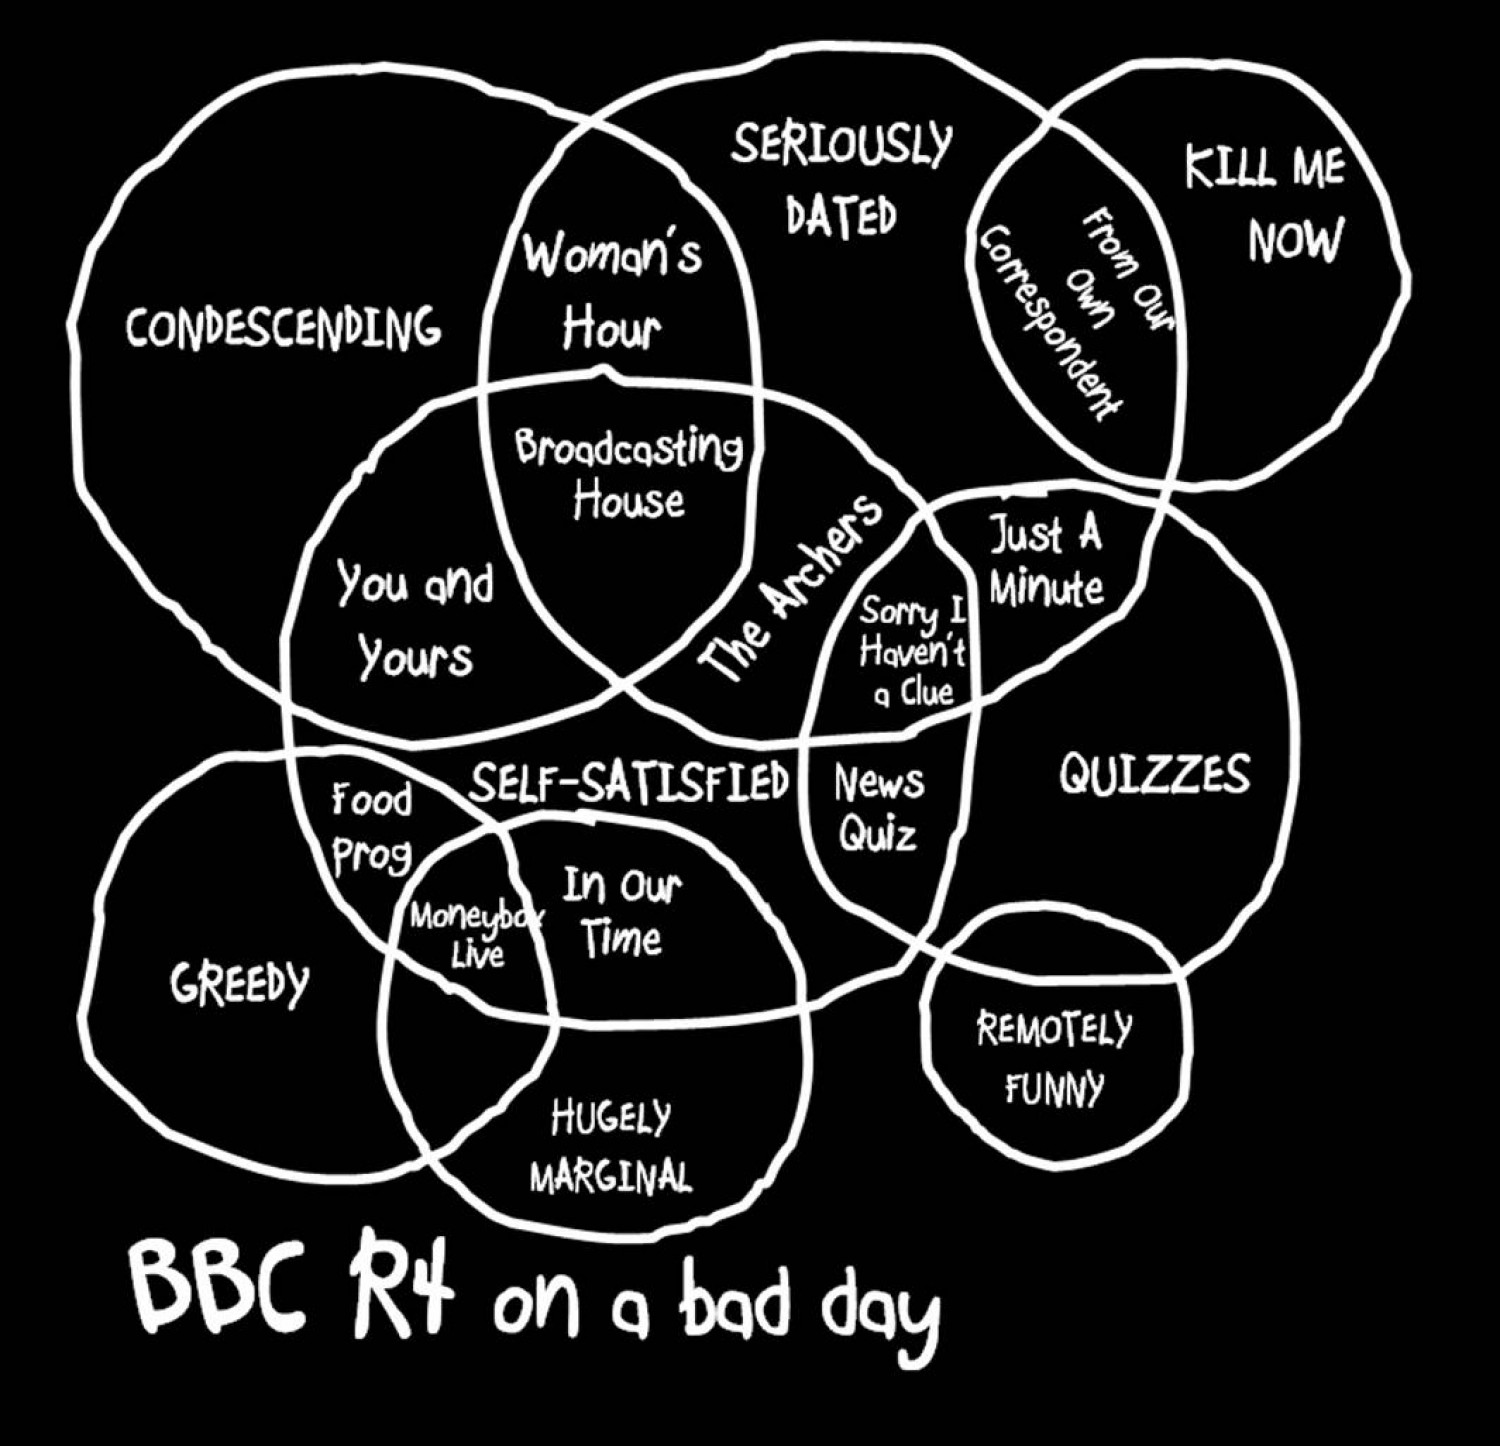 BBC R4 On A Bad Day Infographic